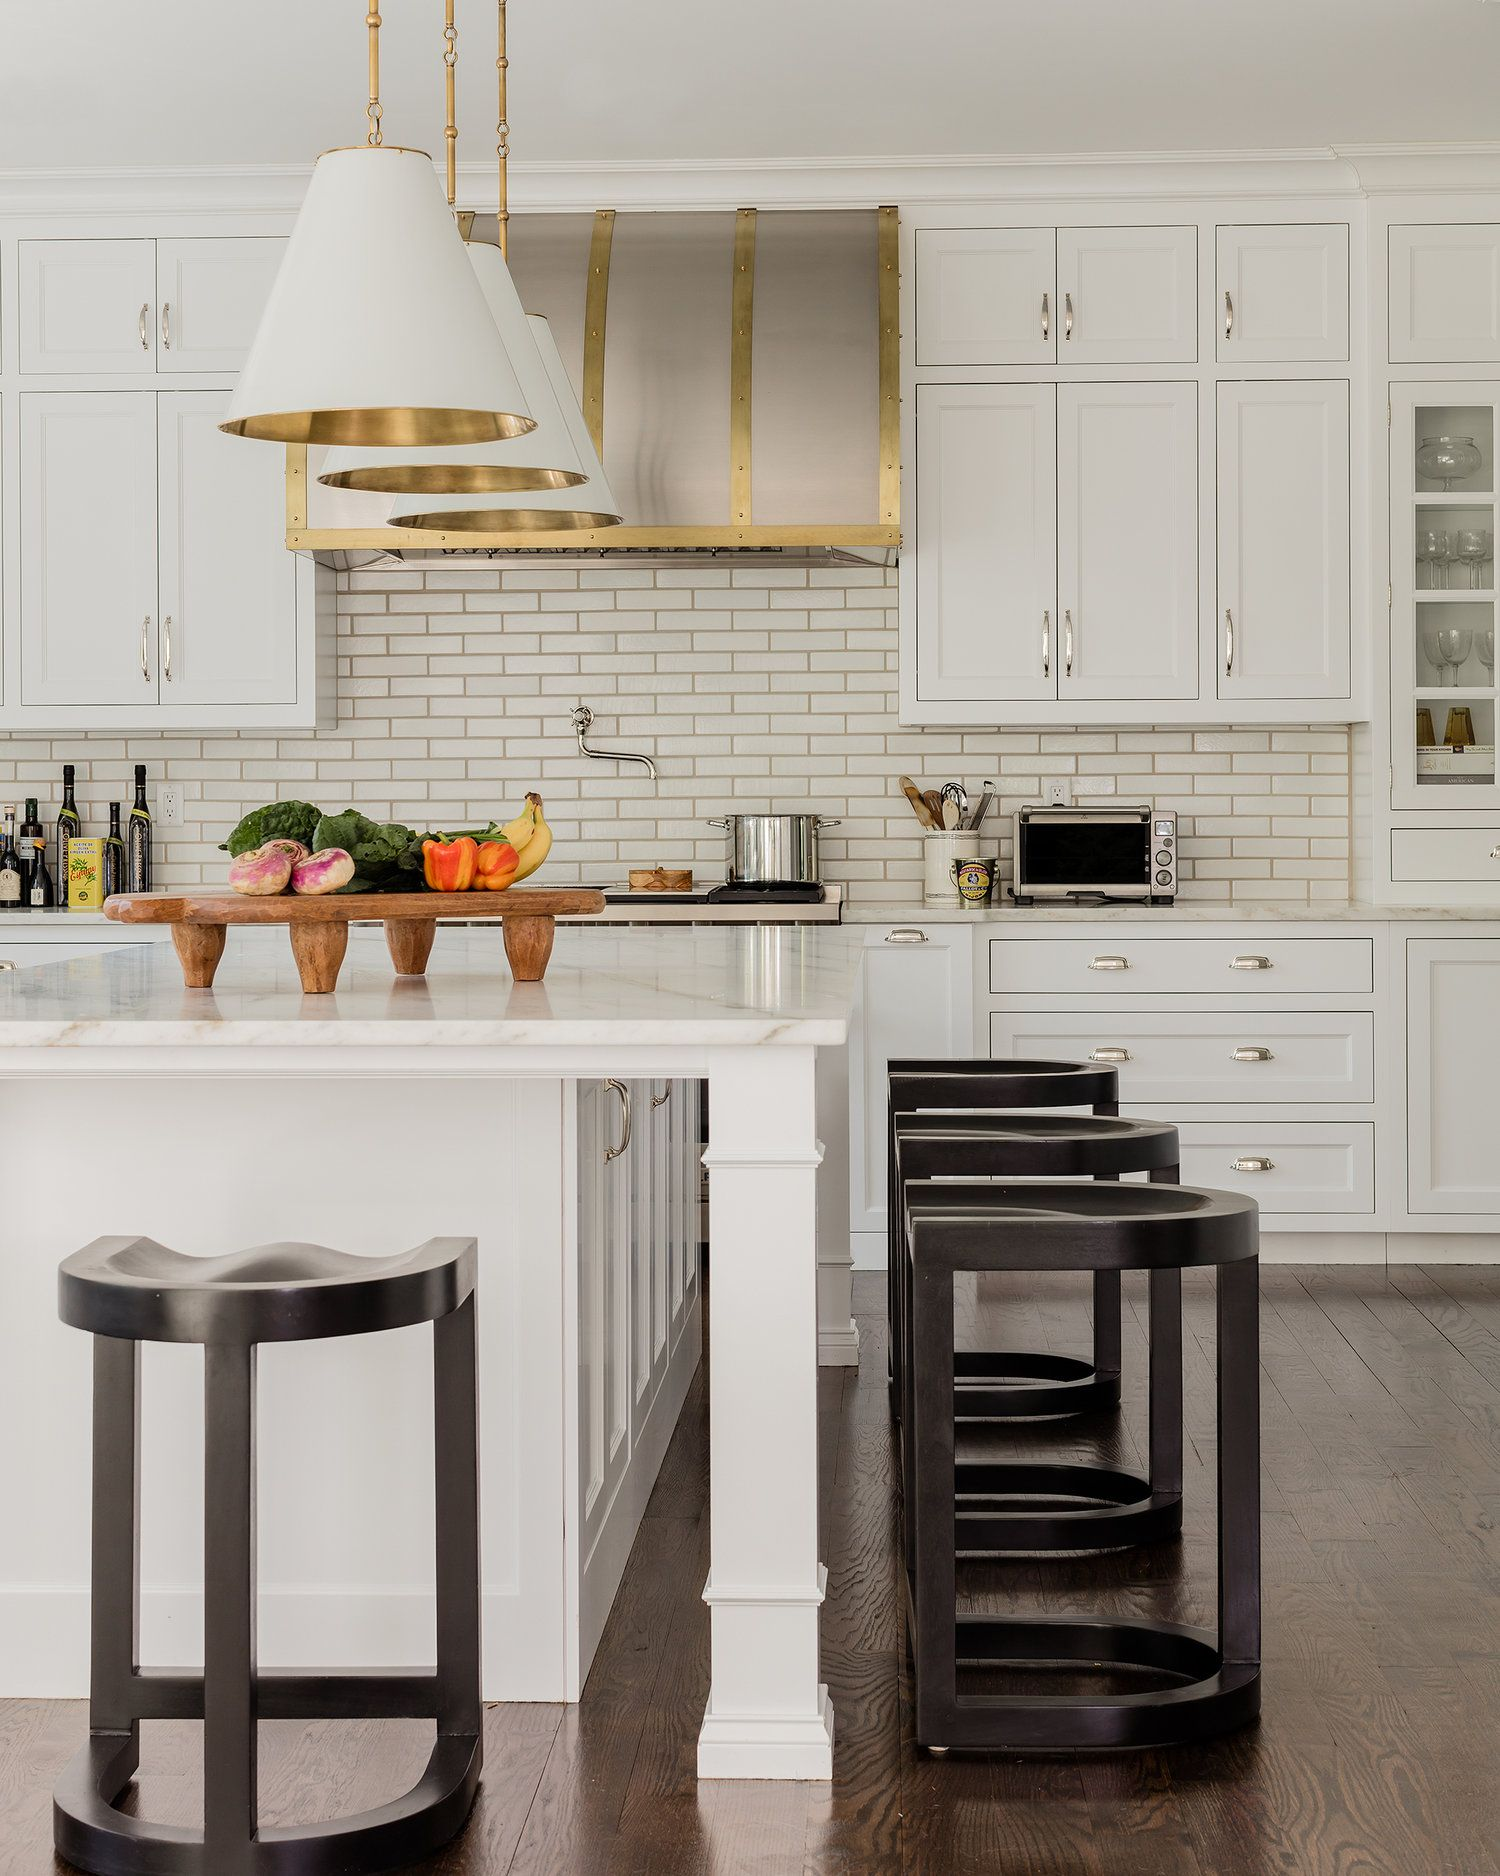 Fabulous Pin By Ivy Garry On Kitchens Love Them Transitional Pdpeps Interior Chair Design Pdpepsorg